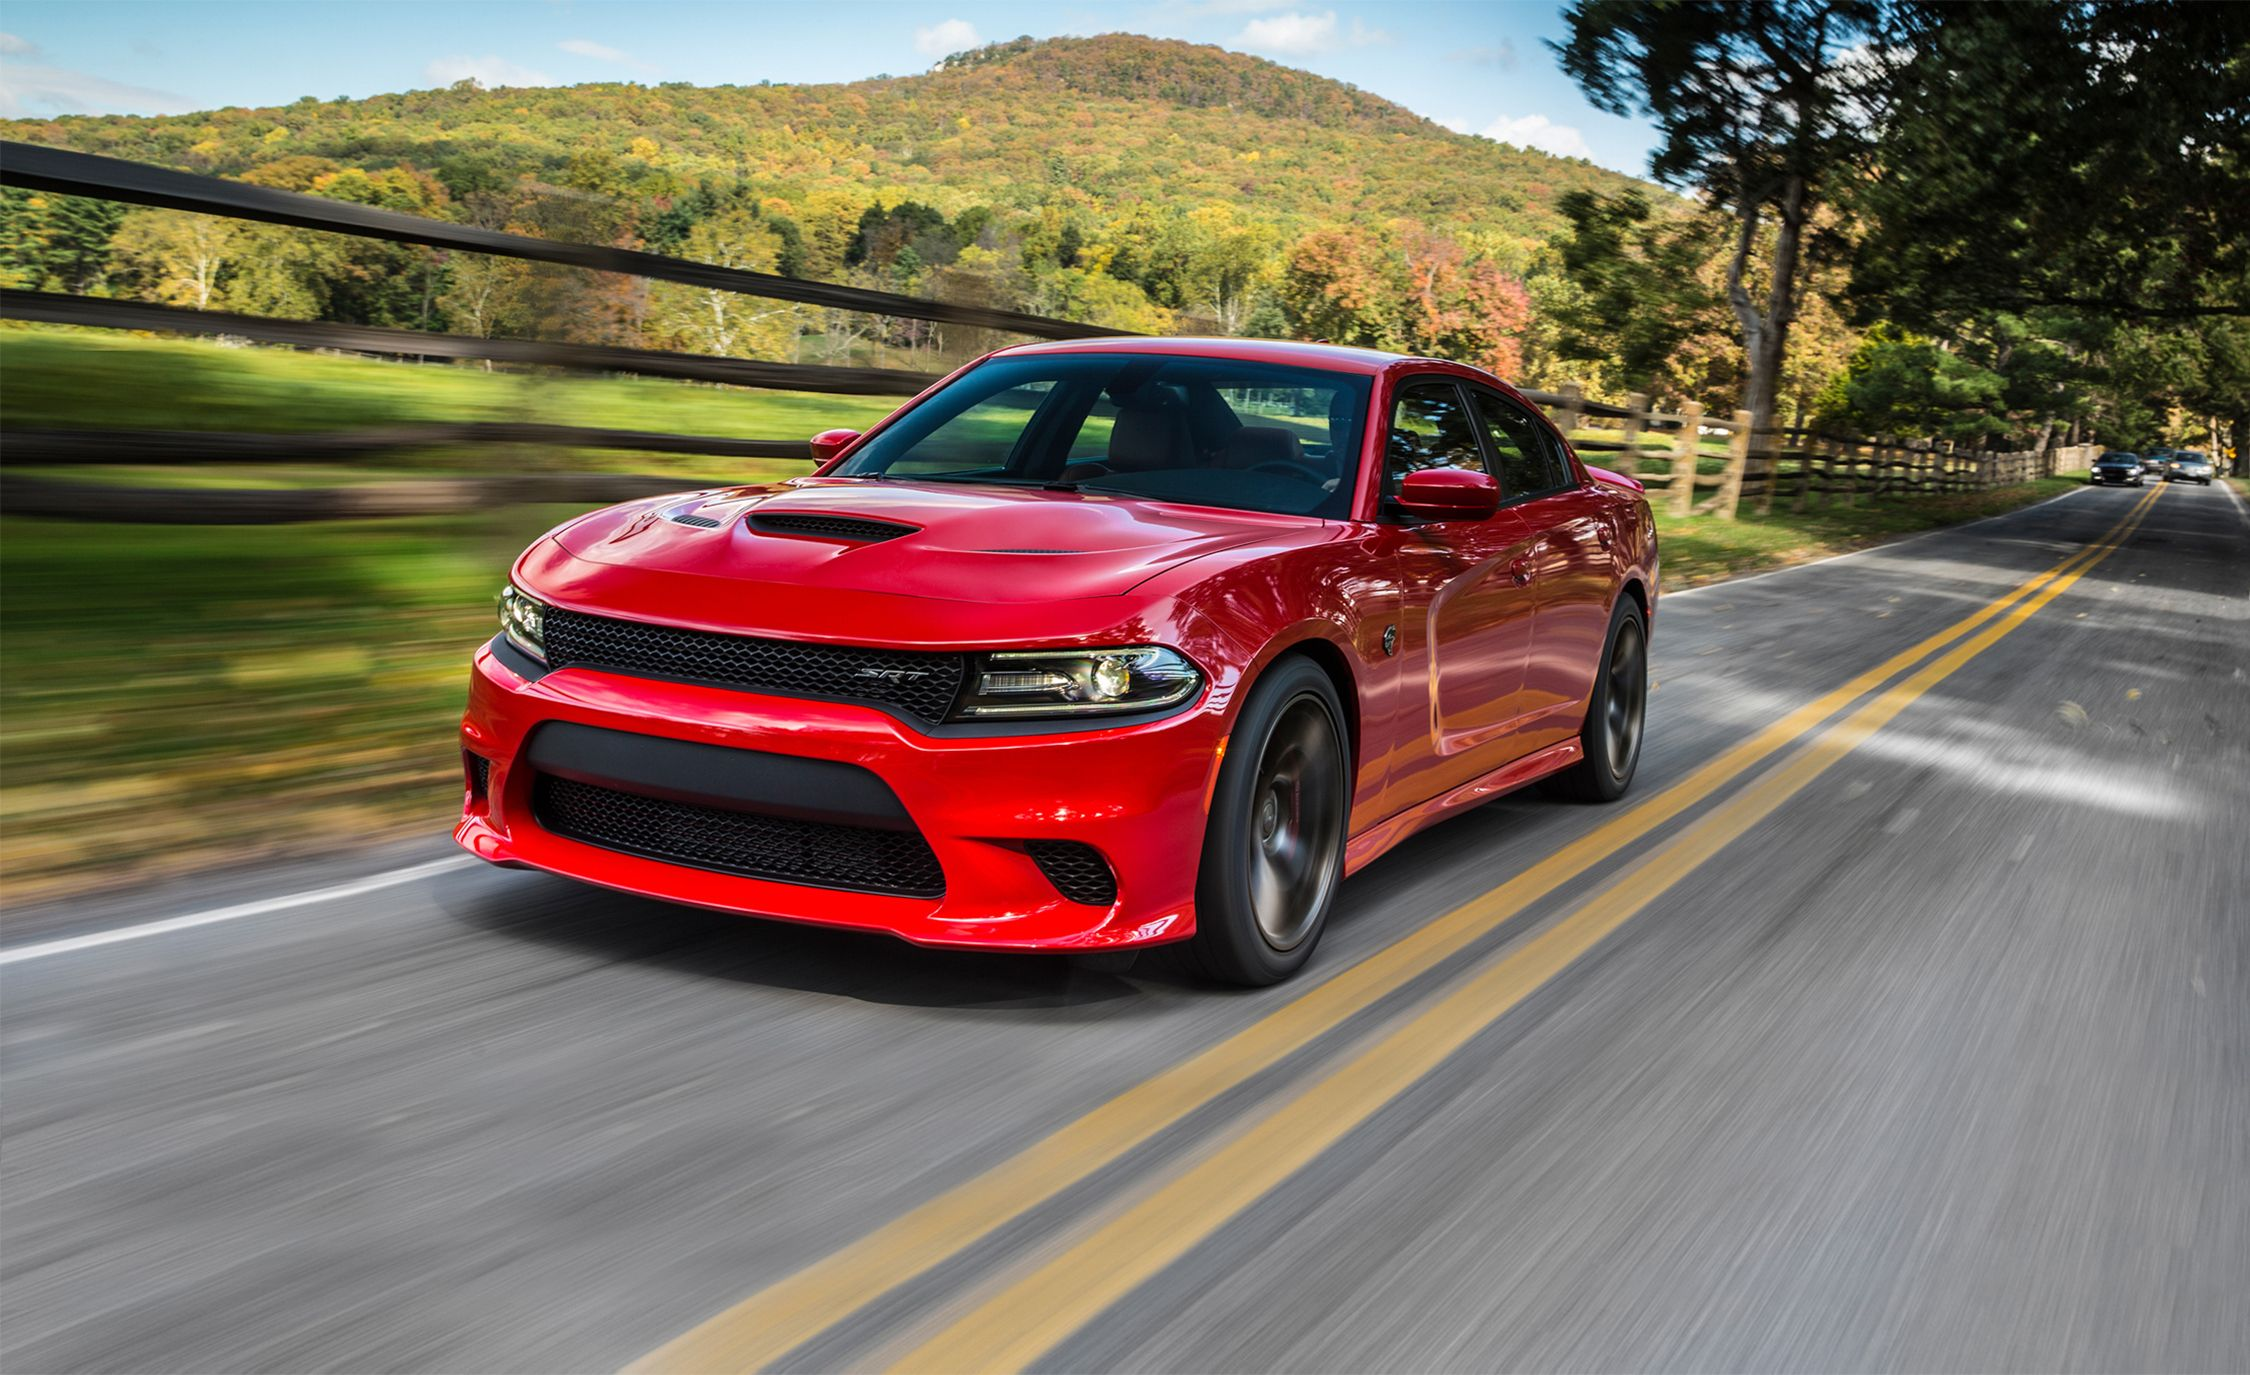 Dodge Charger Srt >> 2017 Dodge Charger Srt Hellcat Review Car And Driver